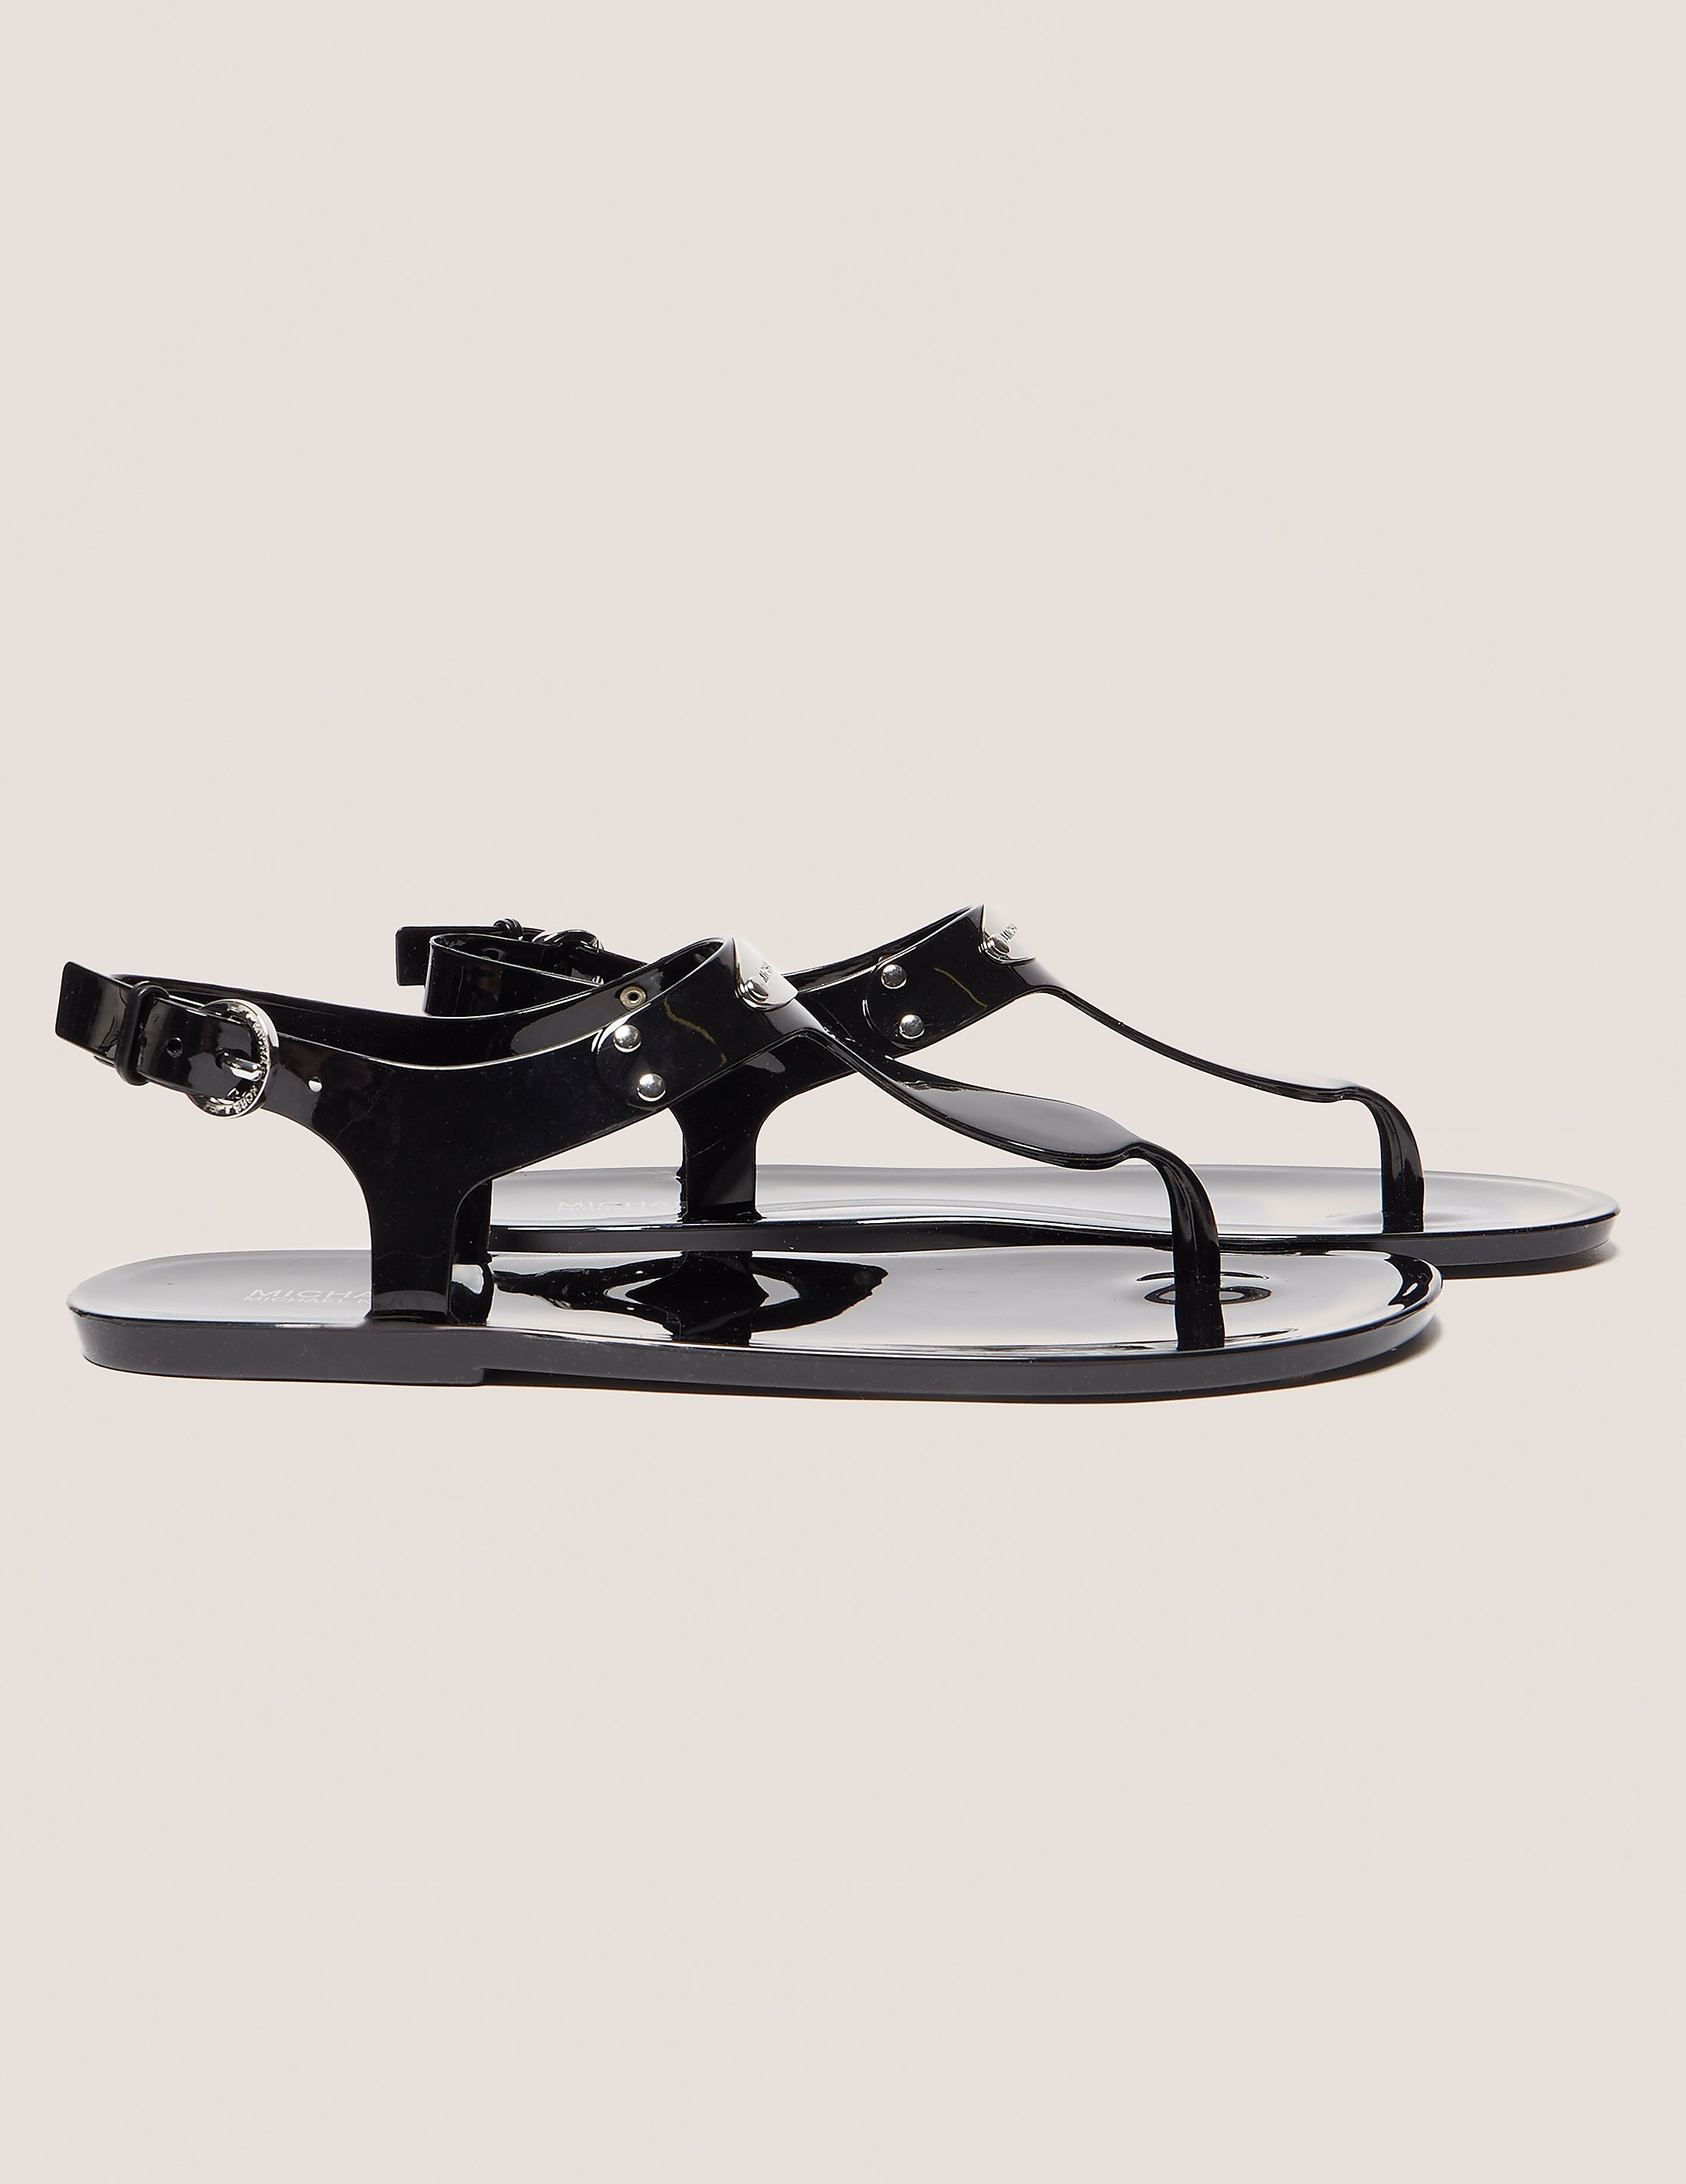 Michael Kors Plate Jelly Sandals